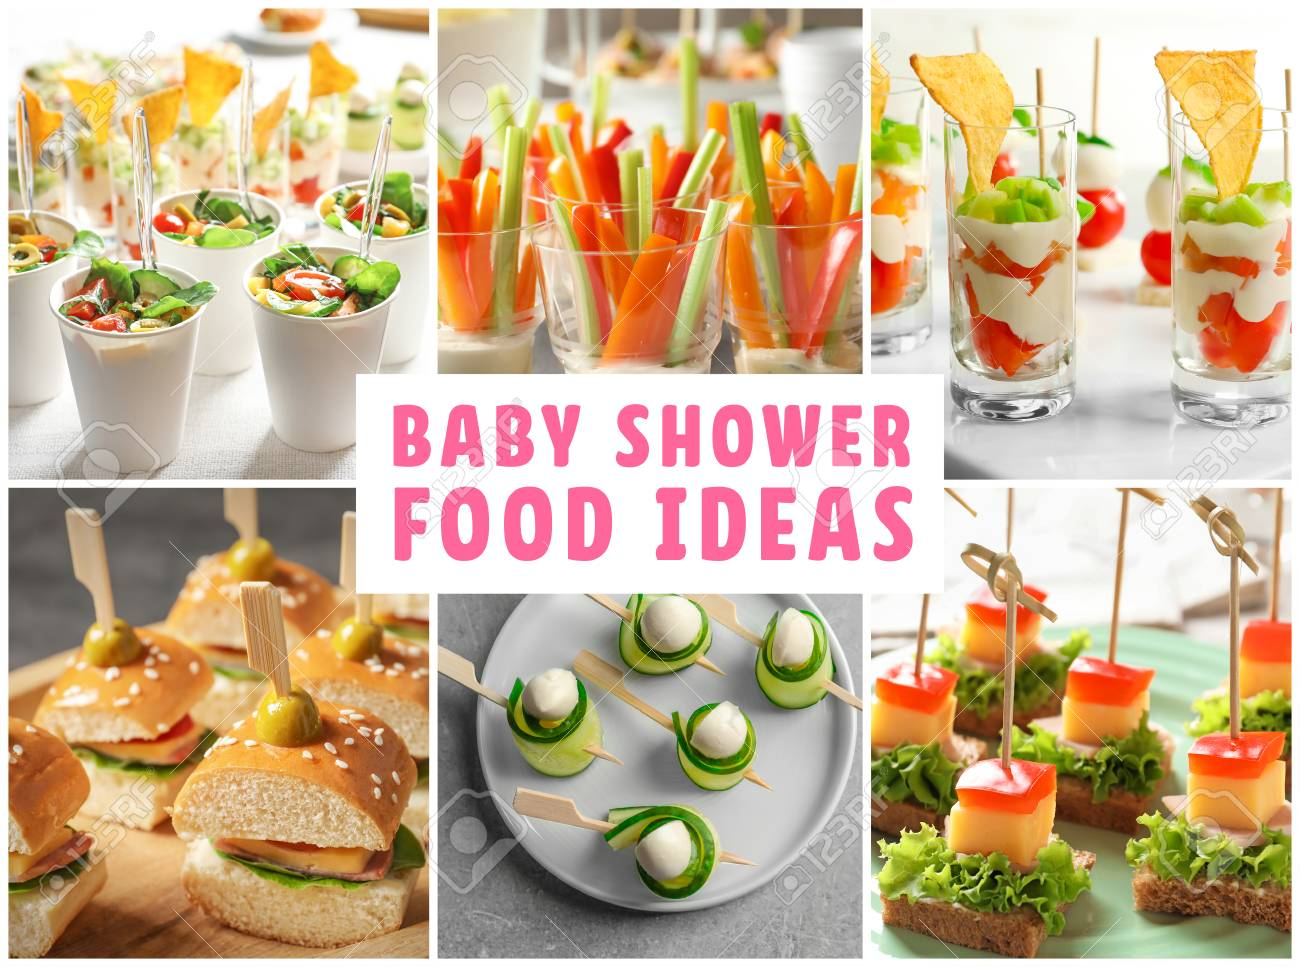 Collage With Baby Shower Food Ideas Stock Photo Picture And Royalty Free Image Image 90868195